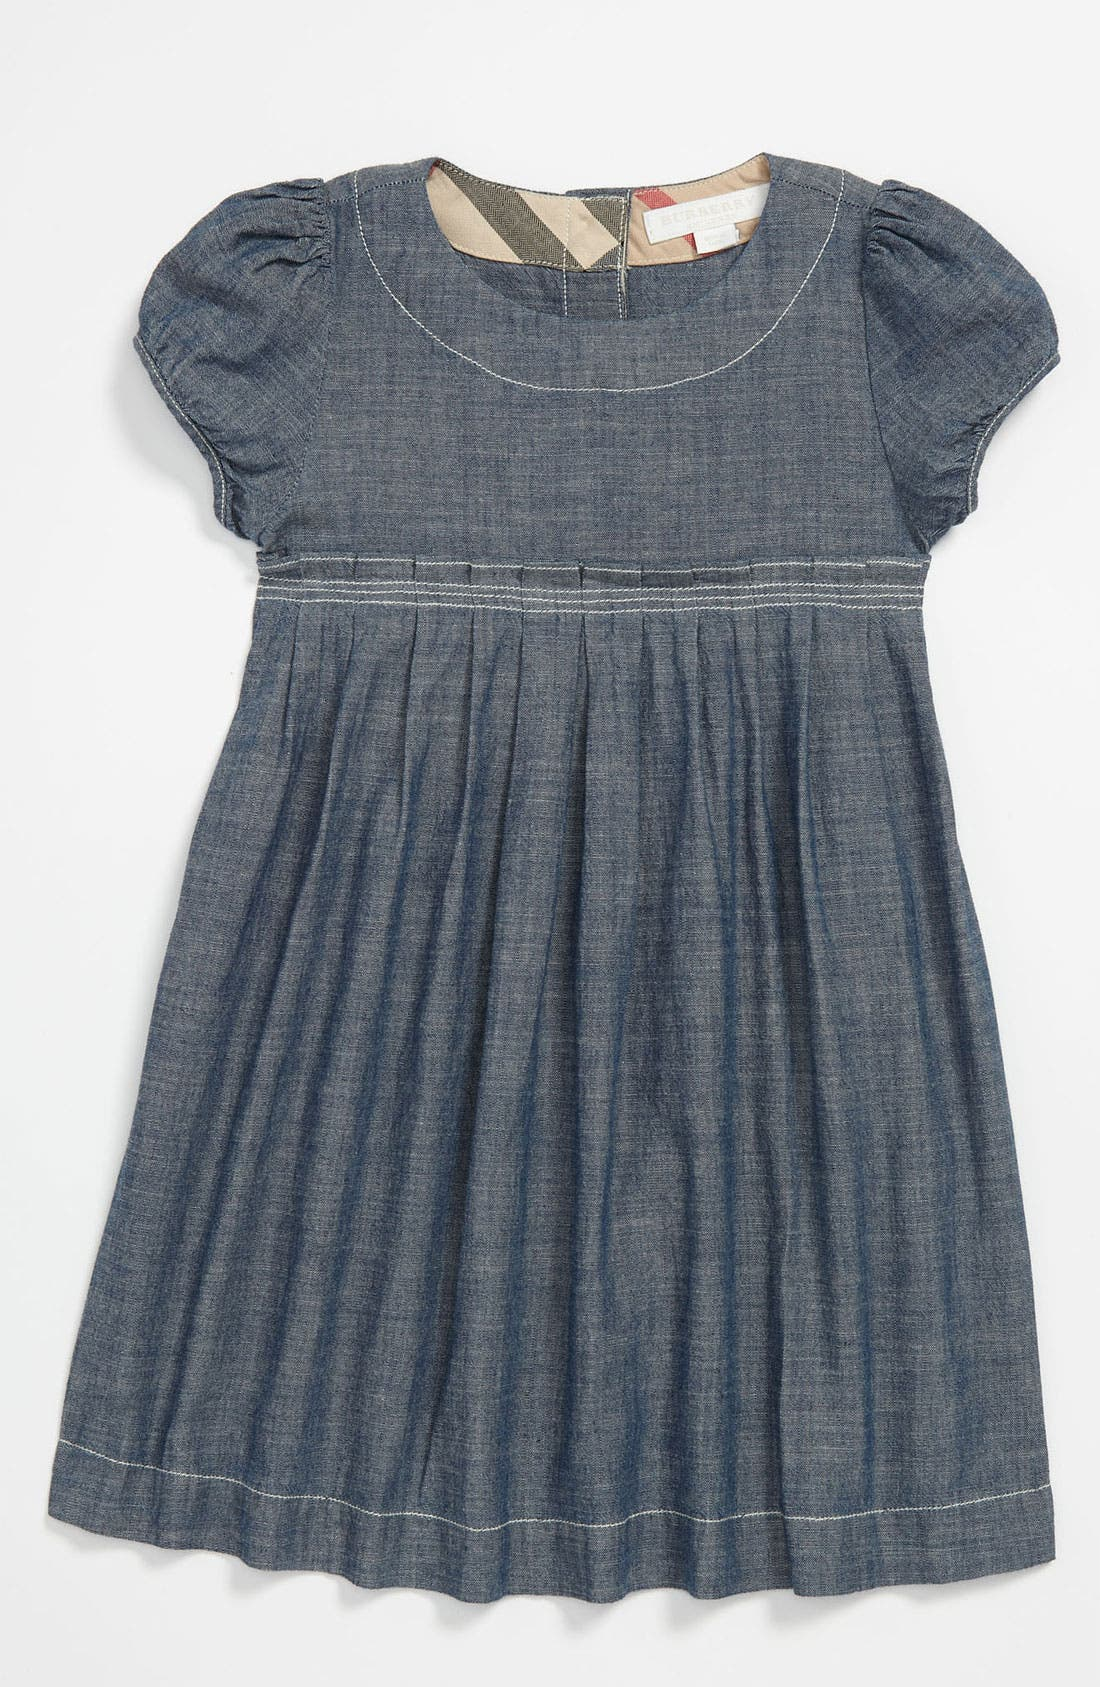 Alternate Image 1 Selected - Burberry 'Coralie' Dress (Toddler)